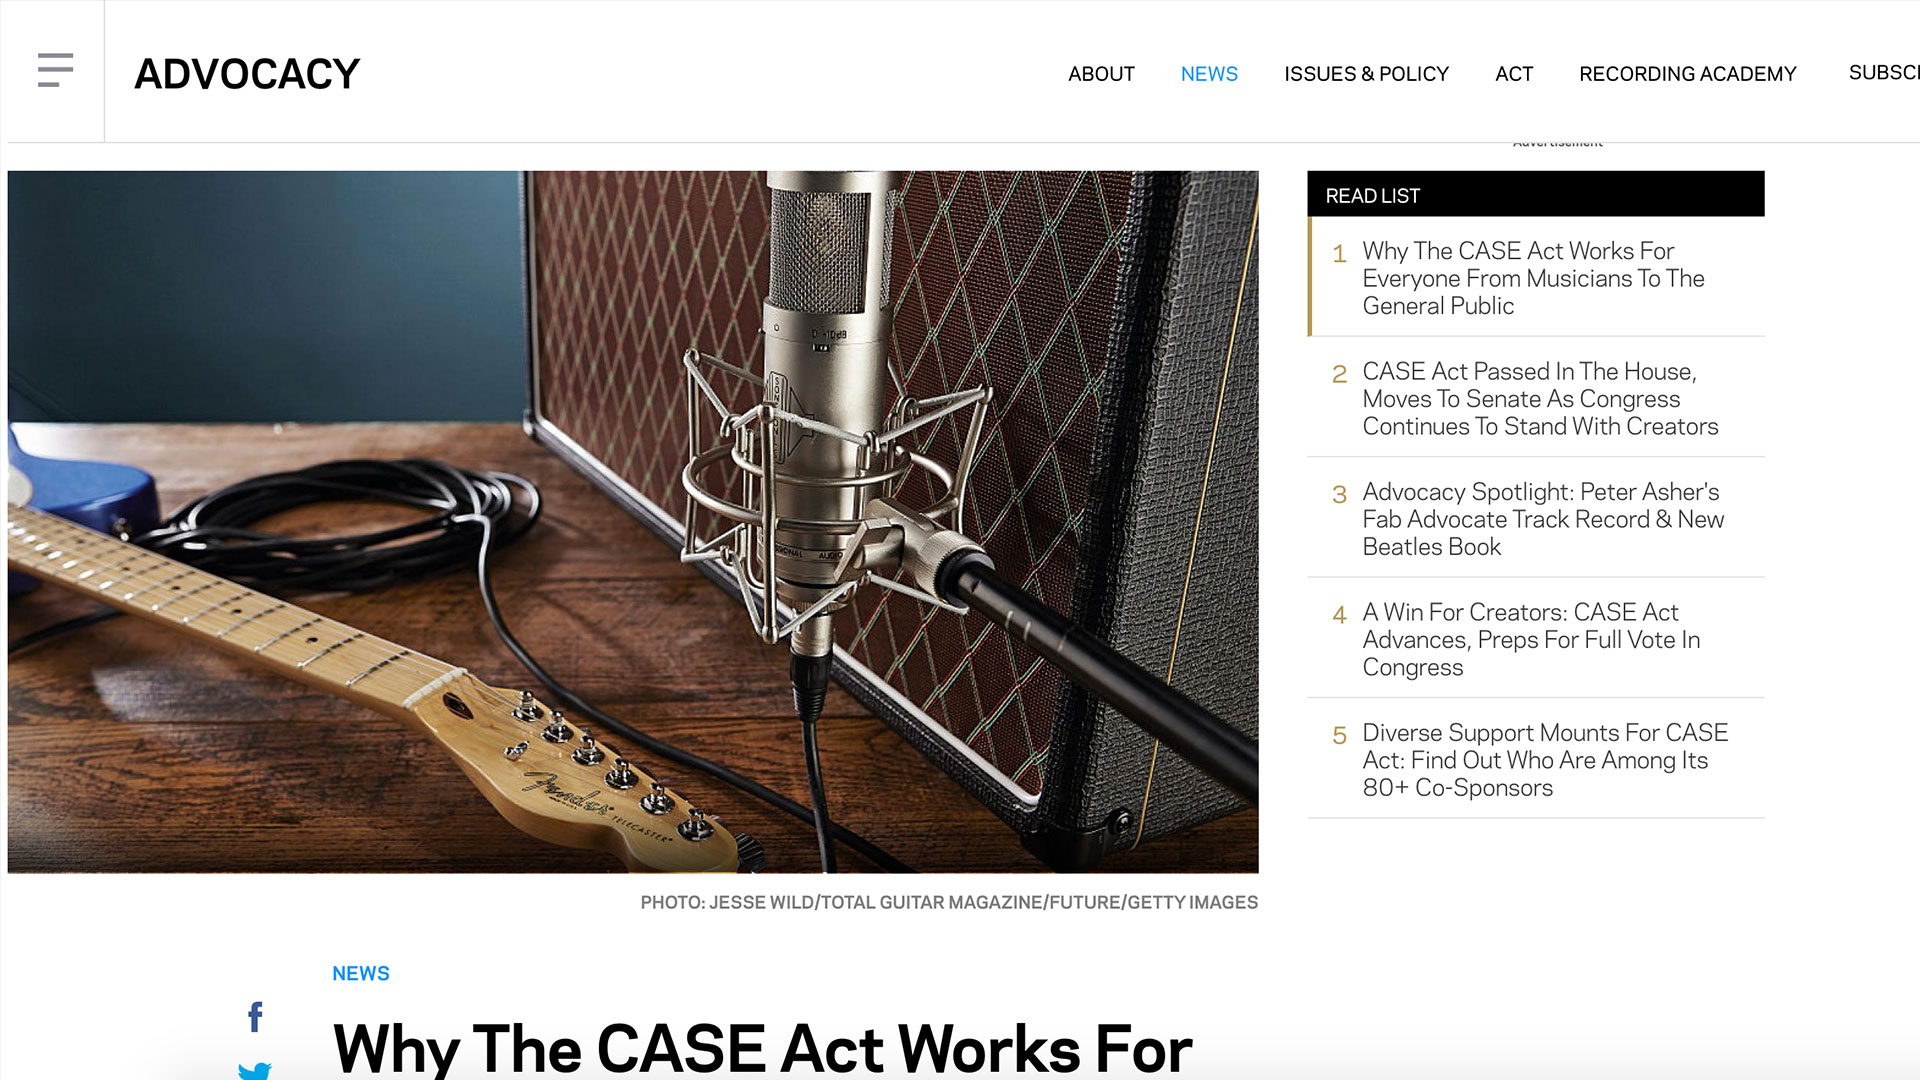 Fairness Rocks News Why The CASE Act Works For Everyone From Musicians To The General Public